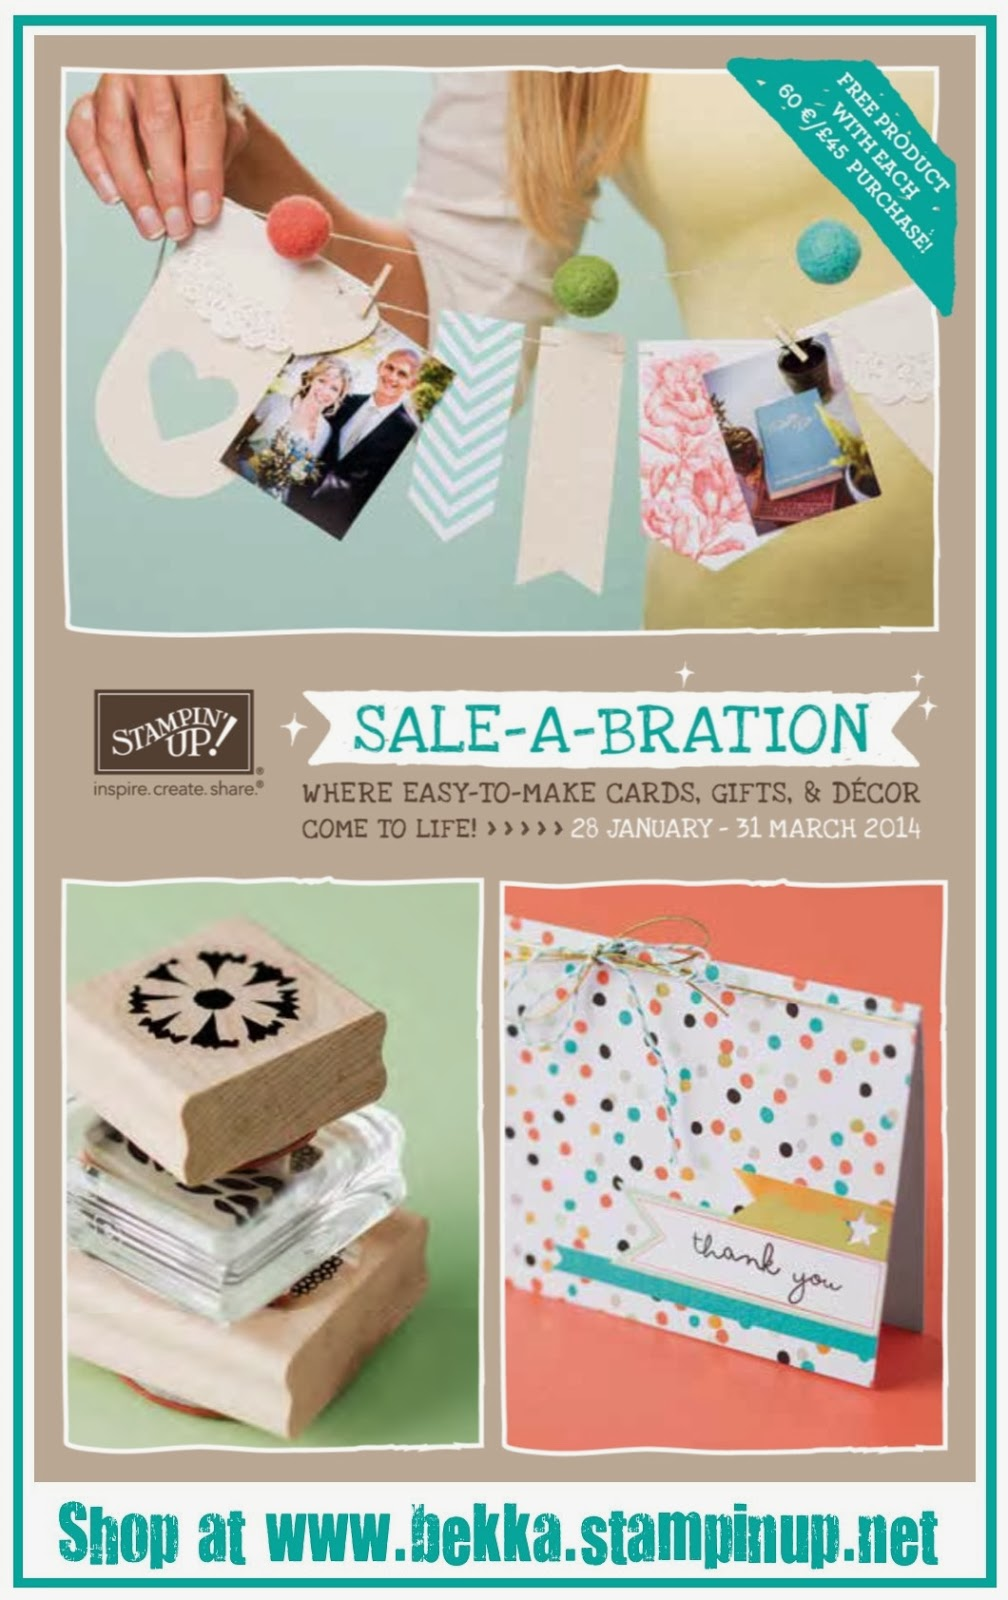 Earn free products from this brochure when you shop at www.bekka.stampinup.net before 31 March 2014